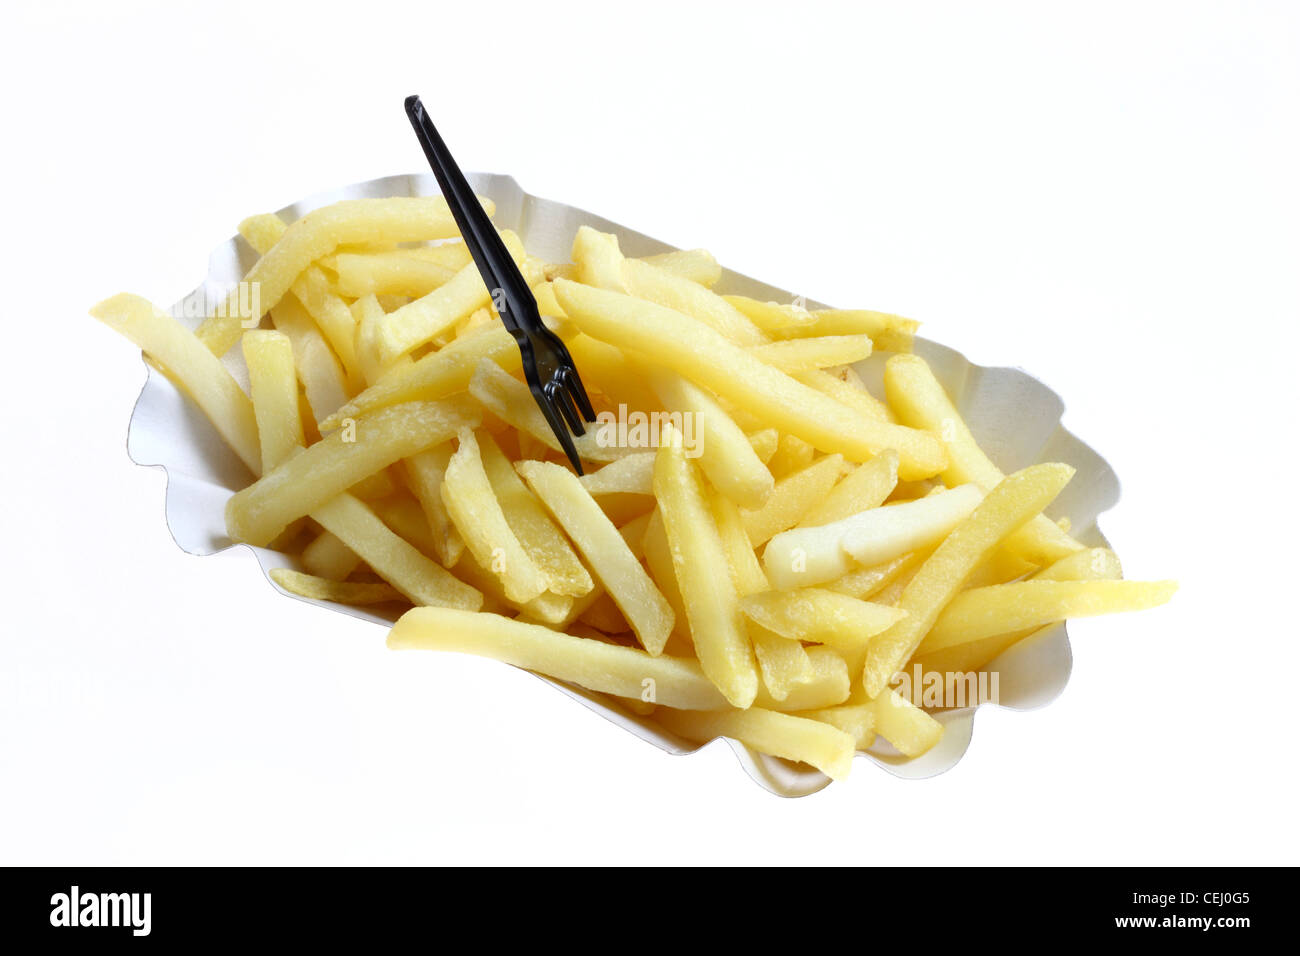 Nutrition, fast food. French fries. - Stock Image